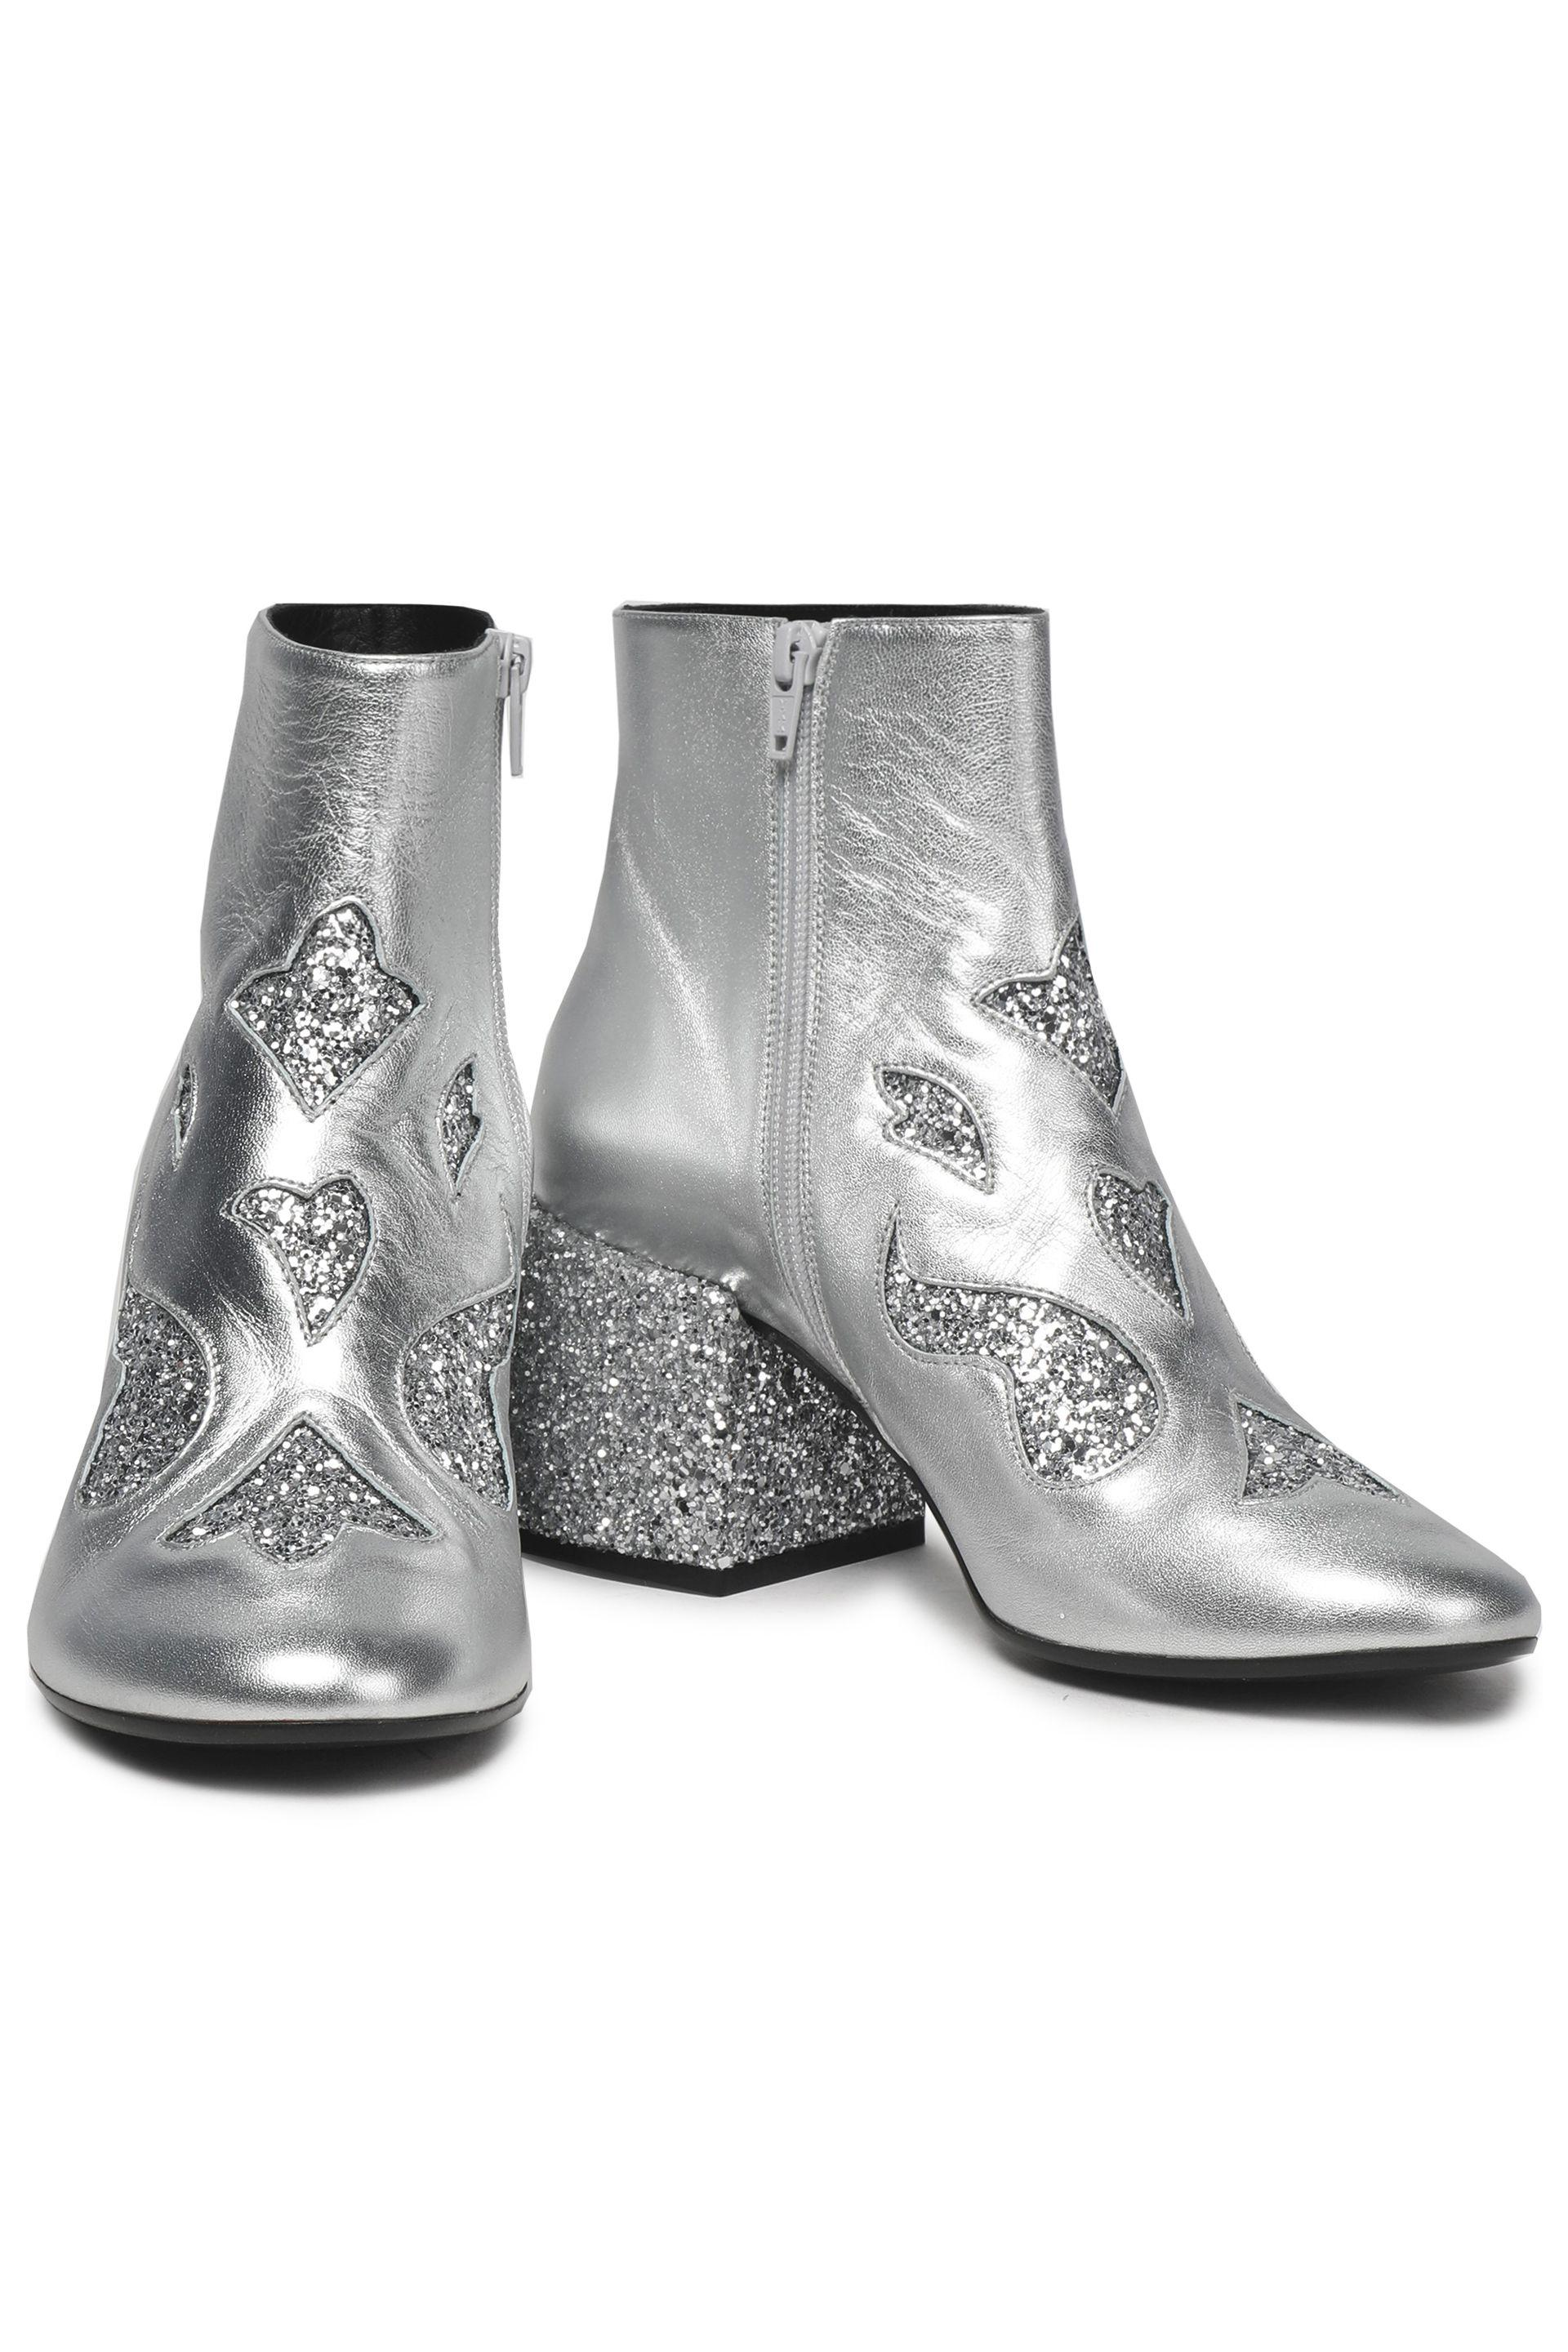 MM6 by Maison Martin Margiela Glittered Leather Ankle Boots in Silver (Metallic)